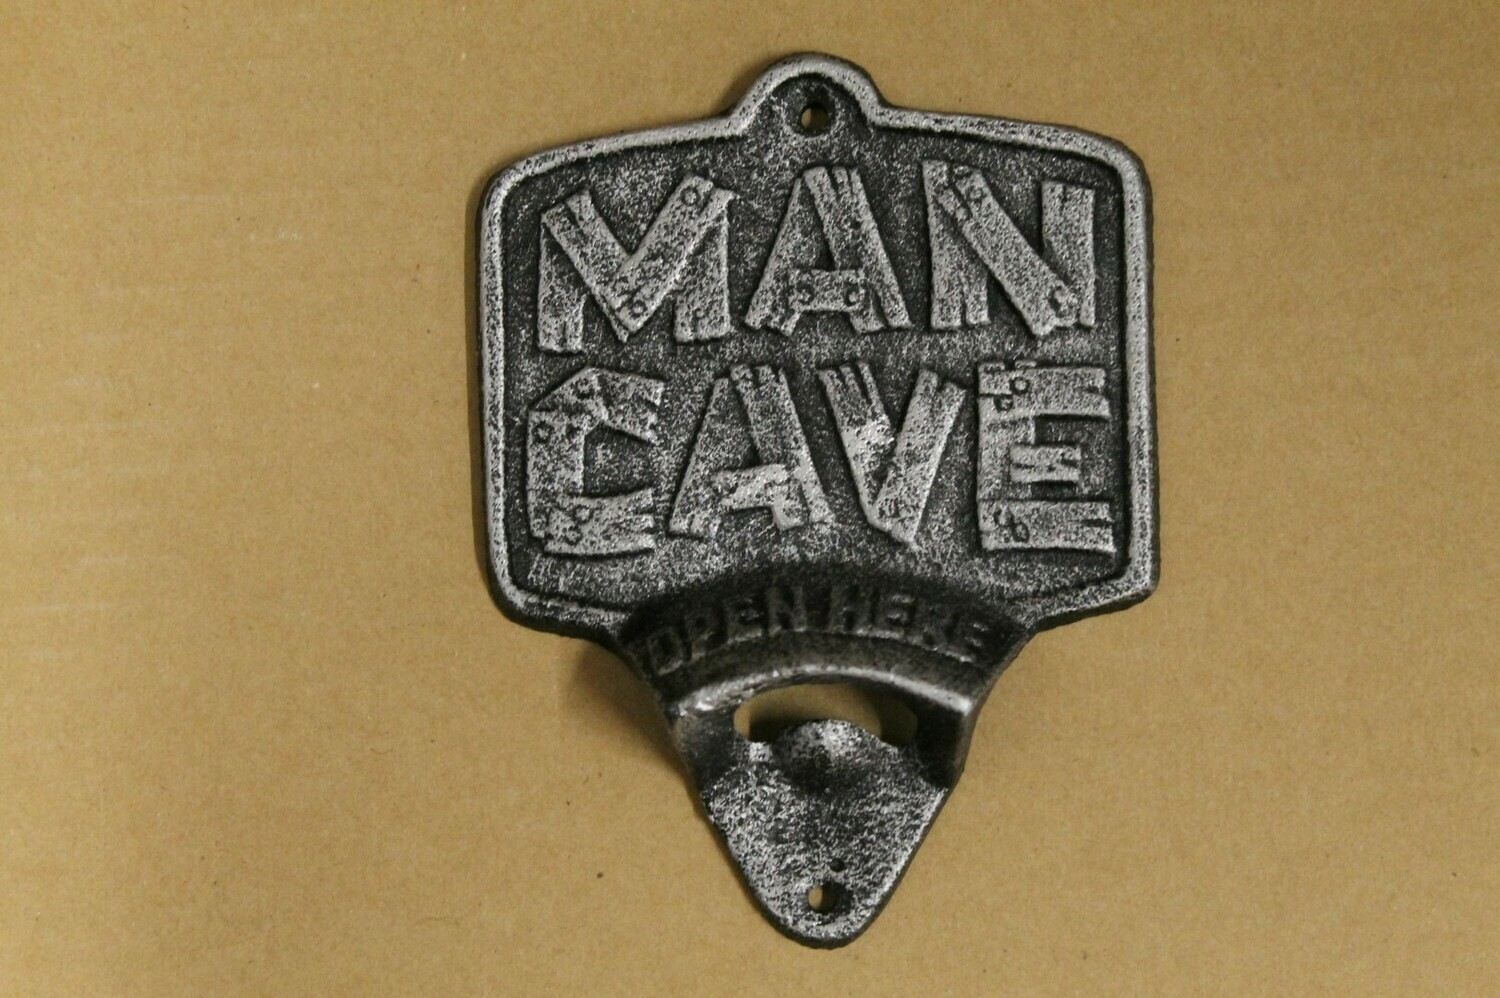 Man Cave Wall Bottle Opener